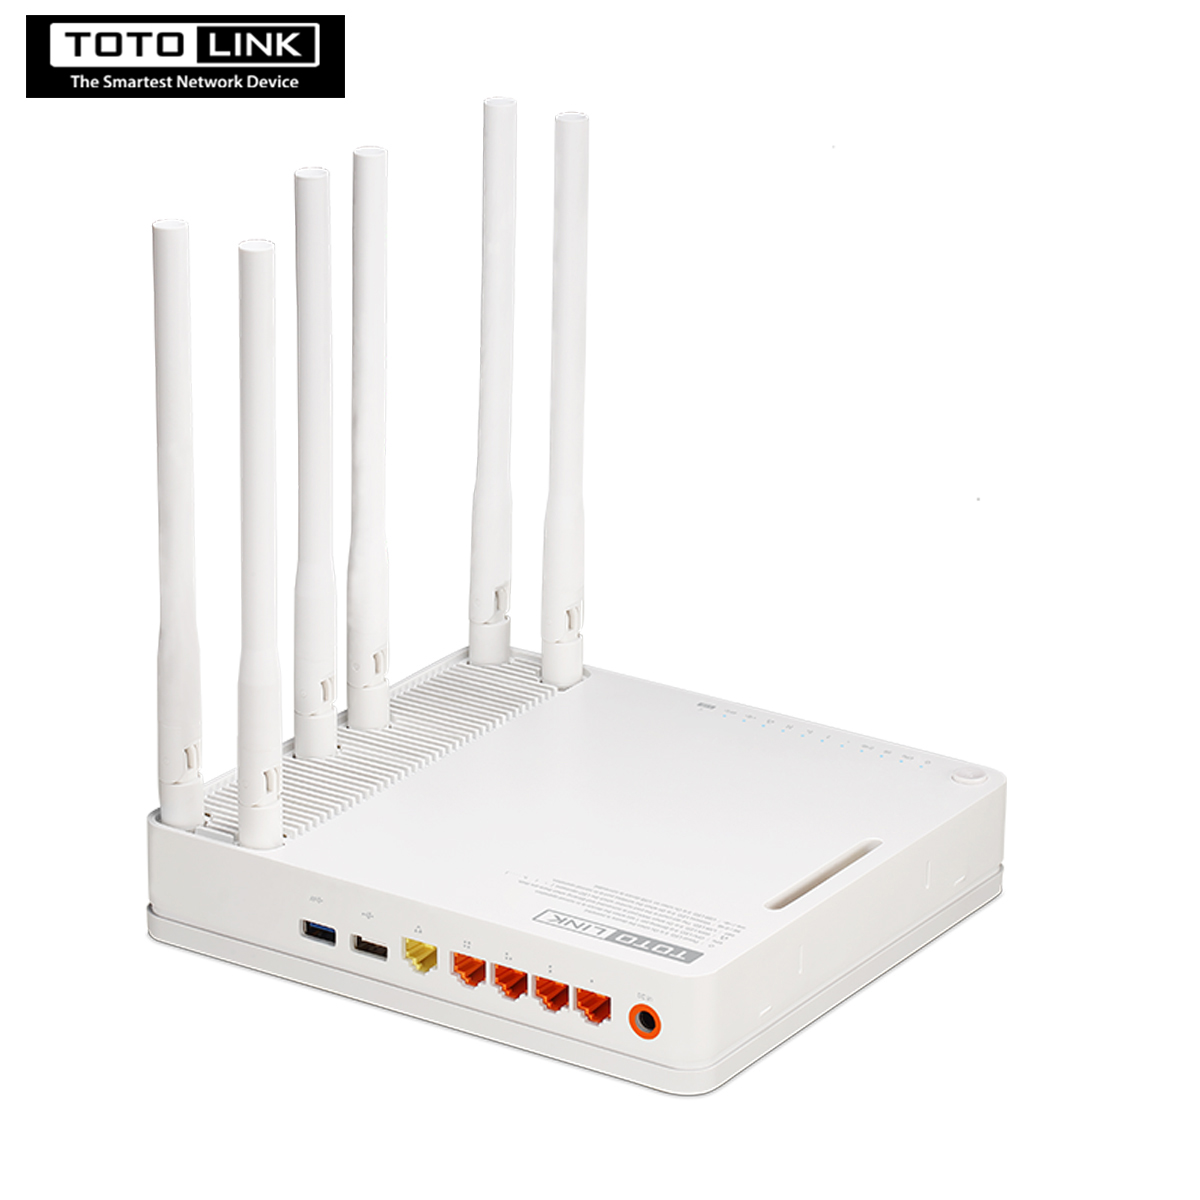 TOTOLINK A6004NS AC1900 Wireless Dual Band Gigabit Router With VPN Smart QOS Features English firmware Repeater